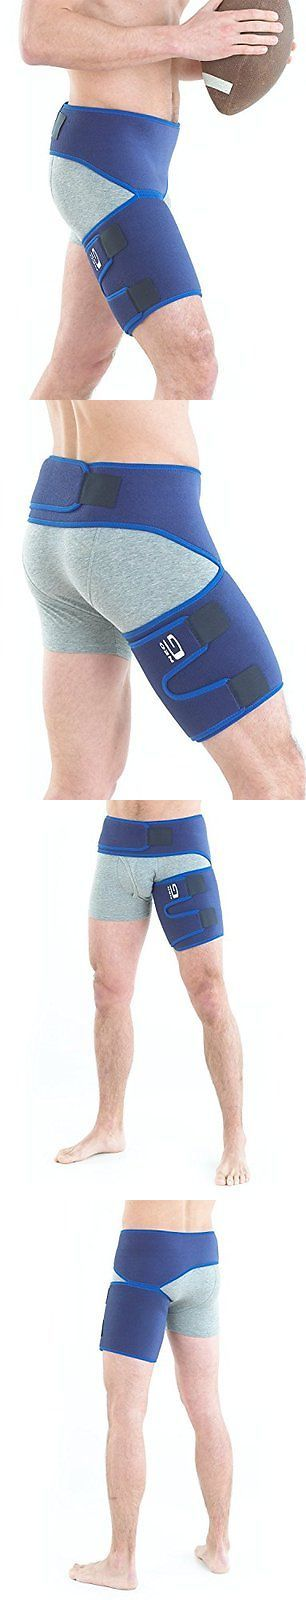 Elbow Knee and Ankle Guards 179777: Groin Muscles Support Compression Upper Thigh Stability Sports Strains Sprains -> BUY IT NOW ONLY: $30.94 on eBay!